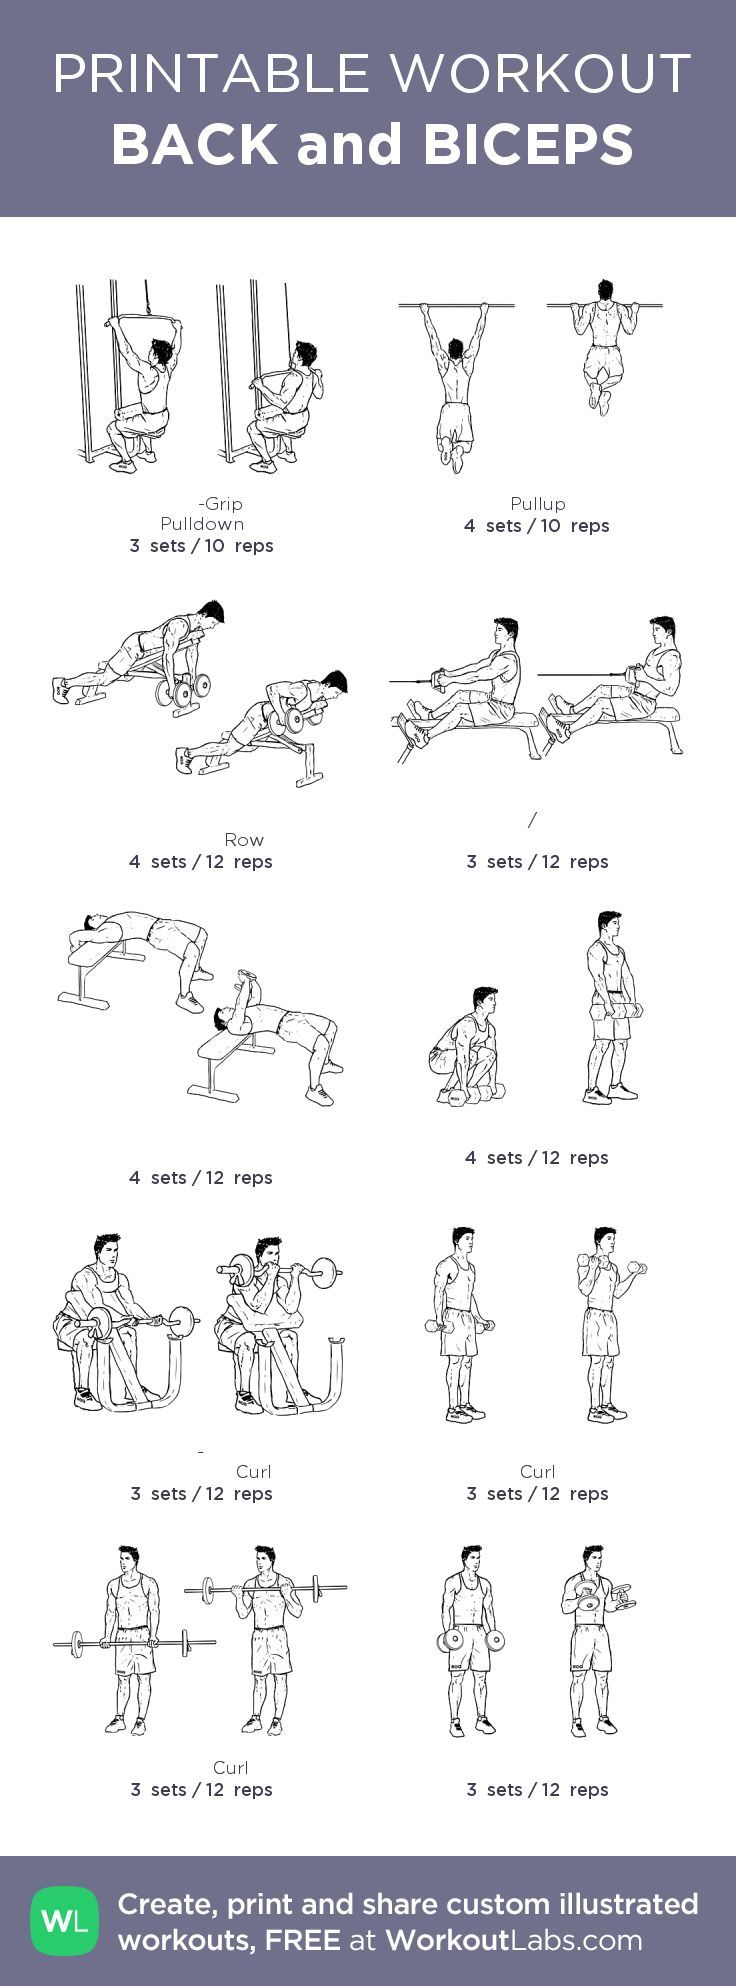 BACK and BICEPS: my custom printable workout by @WorkoutLabs #workoutlabs #customworkout